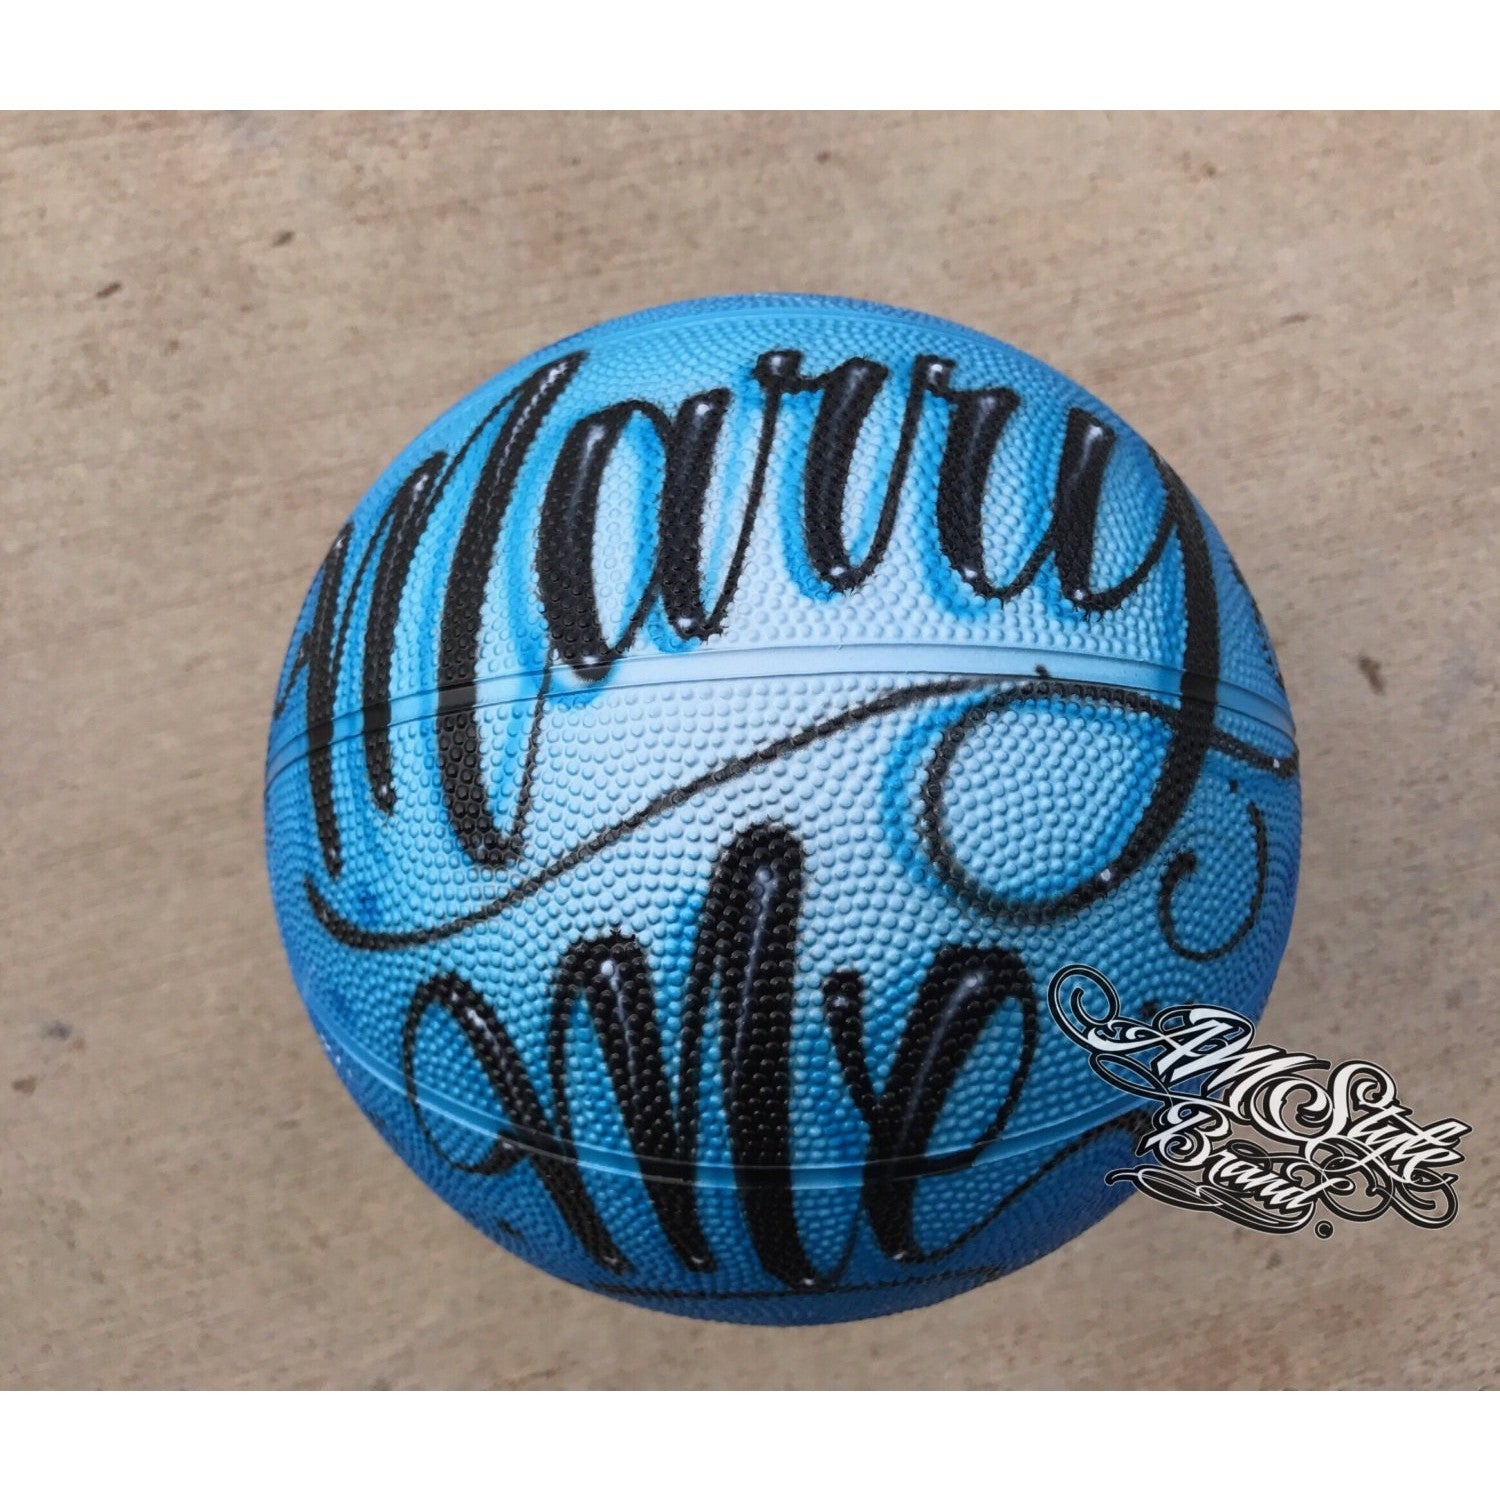 Airbrush Basketballs, Makes a great Party Favor or Gift Idea, Names on Basketballs, Custom and Made to Order.